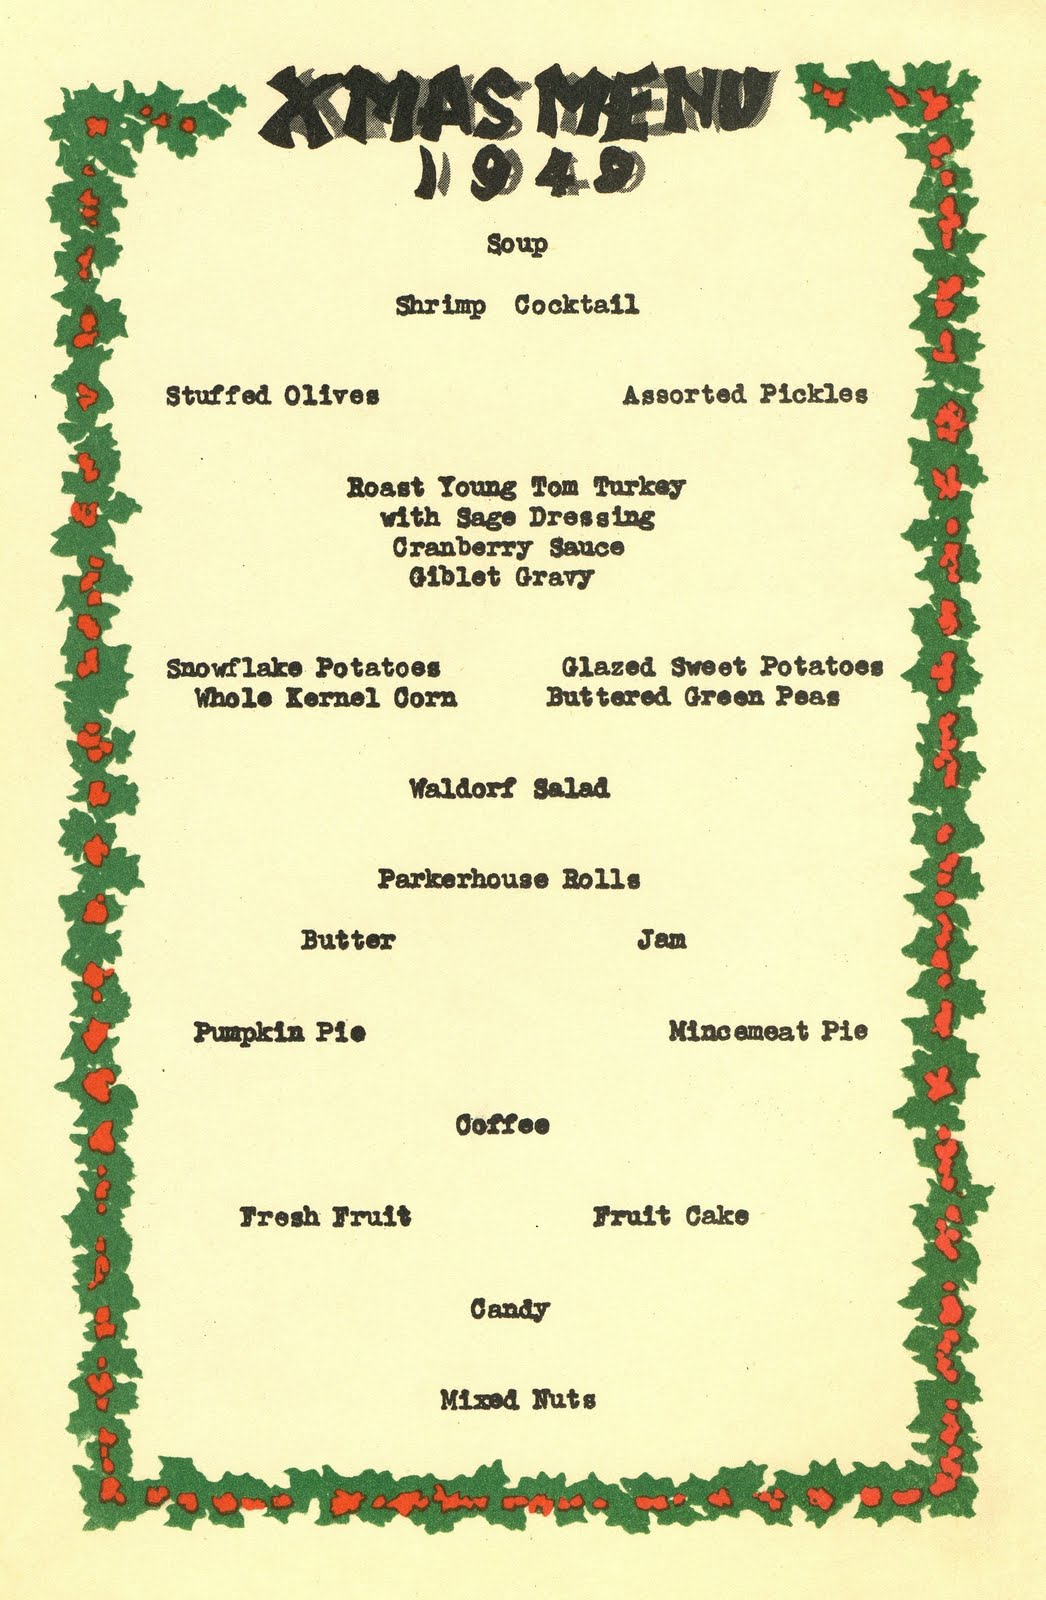 The Christmas Menu For The First Class Dining Car On A